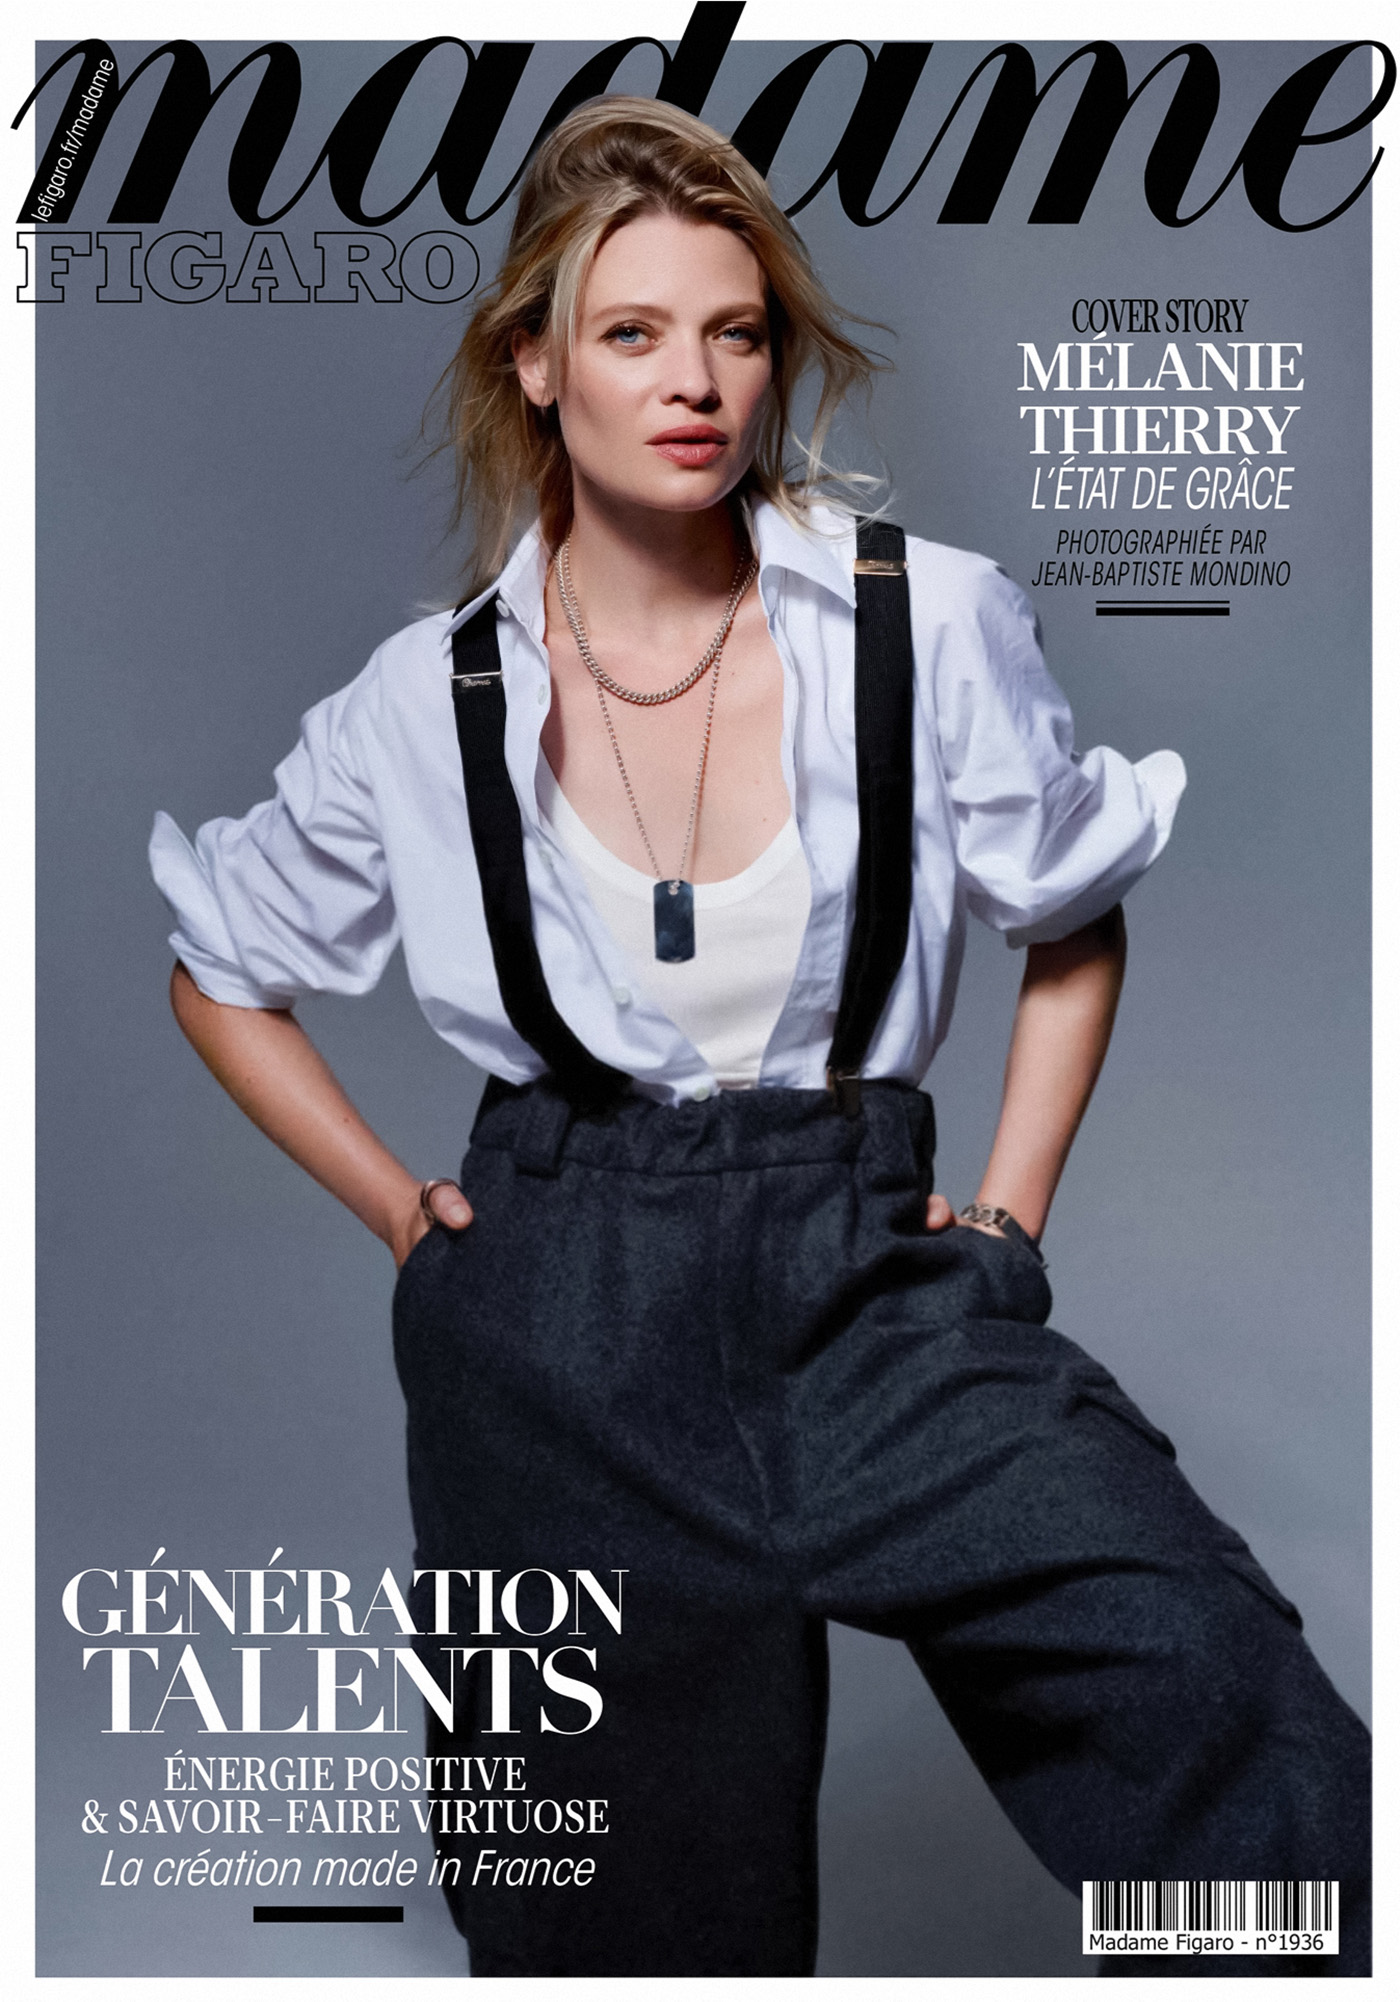 Mélanie Thierry covers Madame Figaro October 1st, 2021 by Jean-Baptiste Mondino